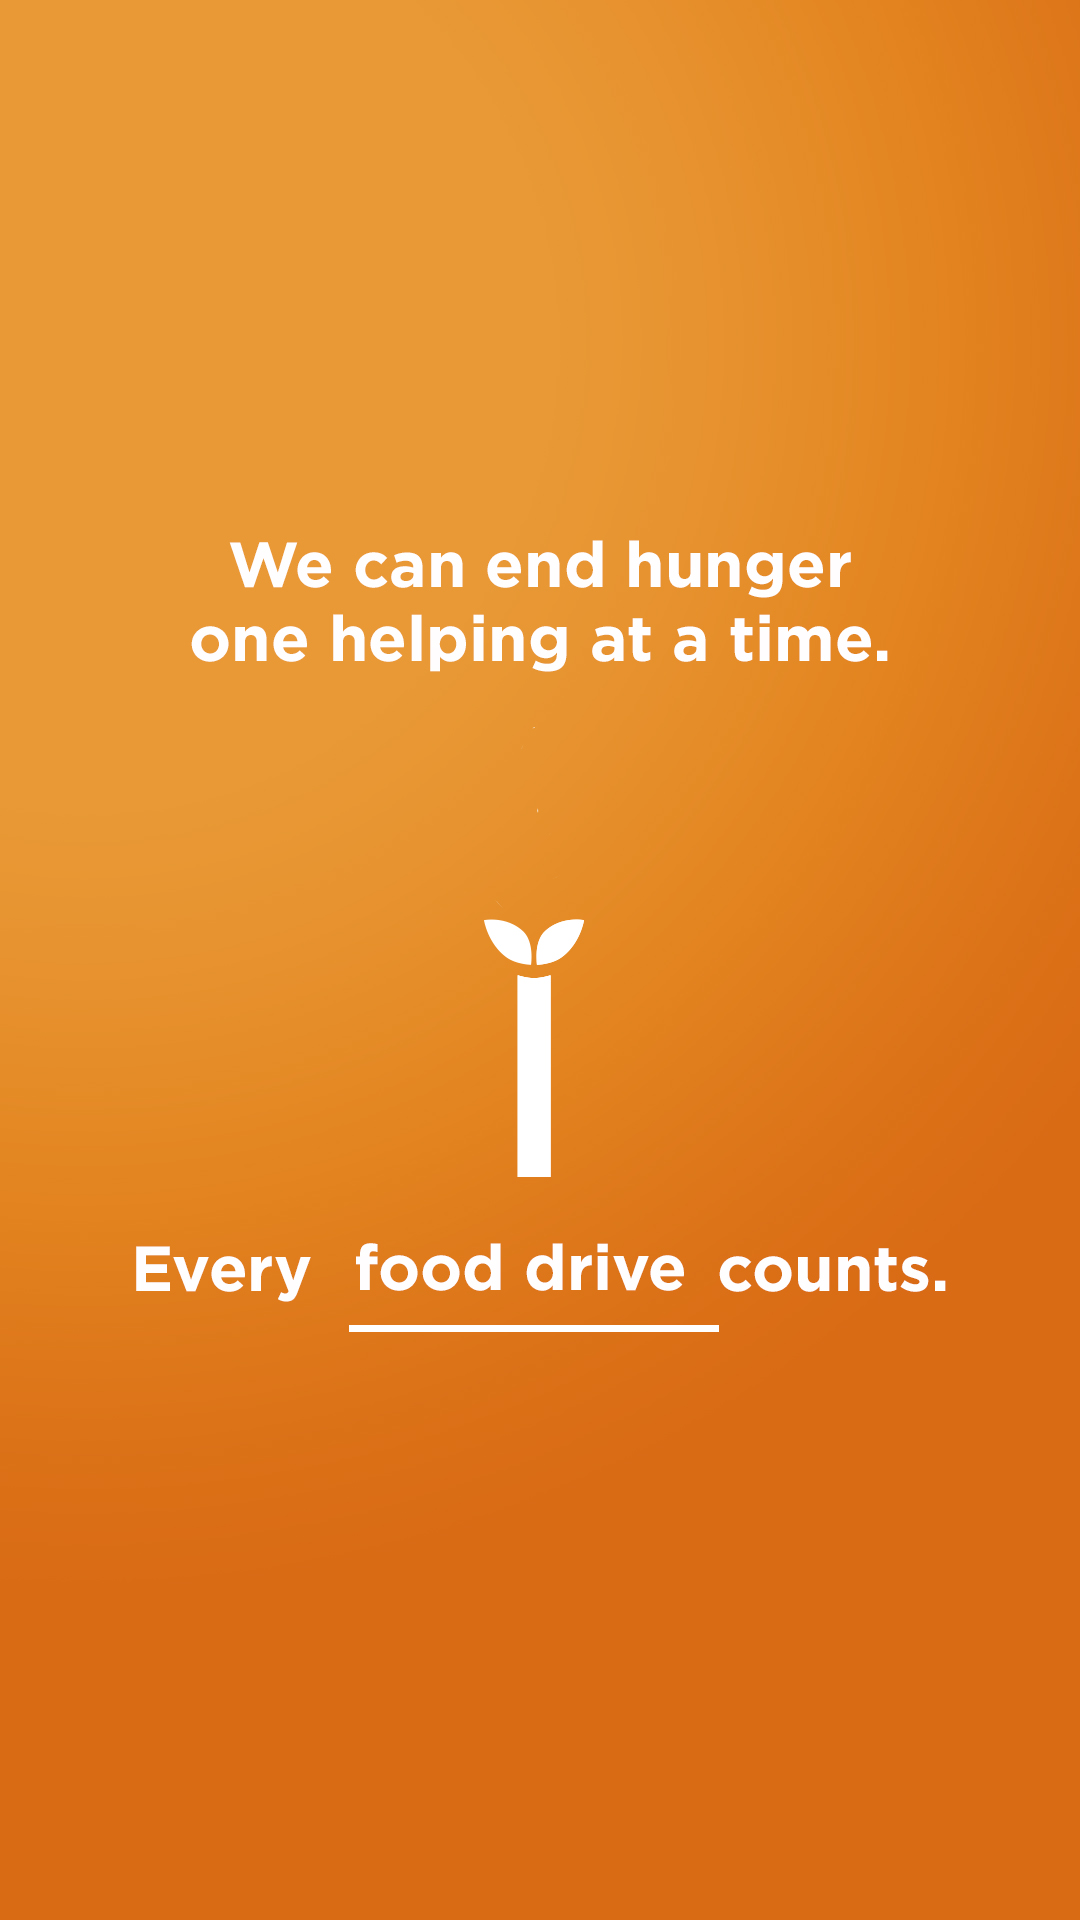 We can end hunger - Food drive